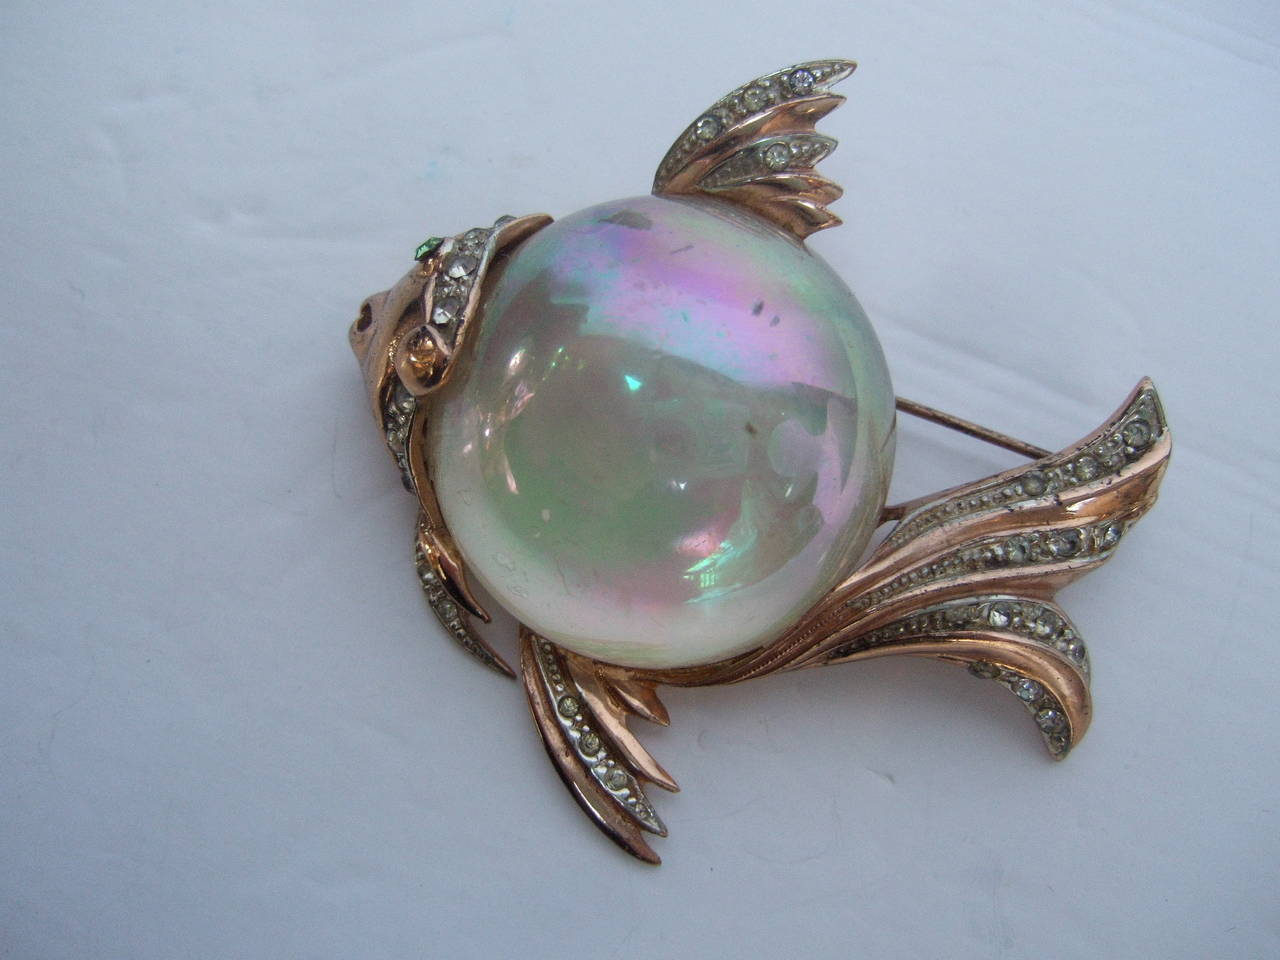 Coro Sterling Jelly Belly Massive Fish Brooch c 1950 3